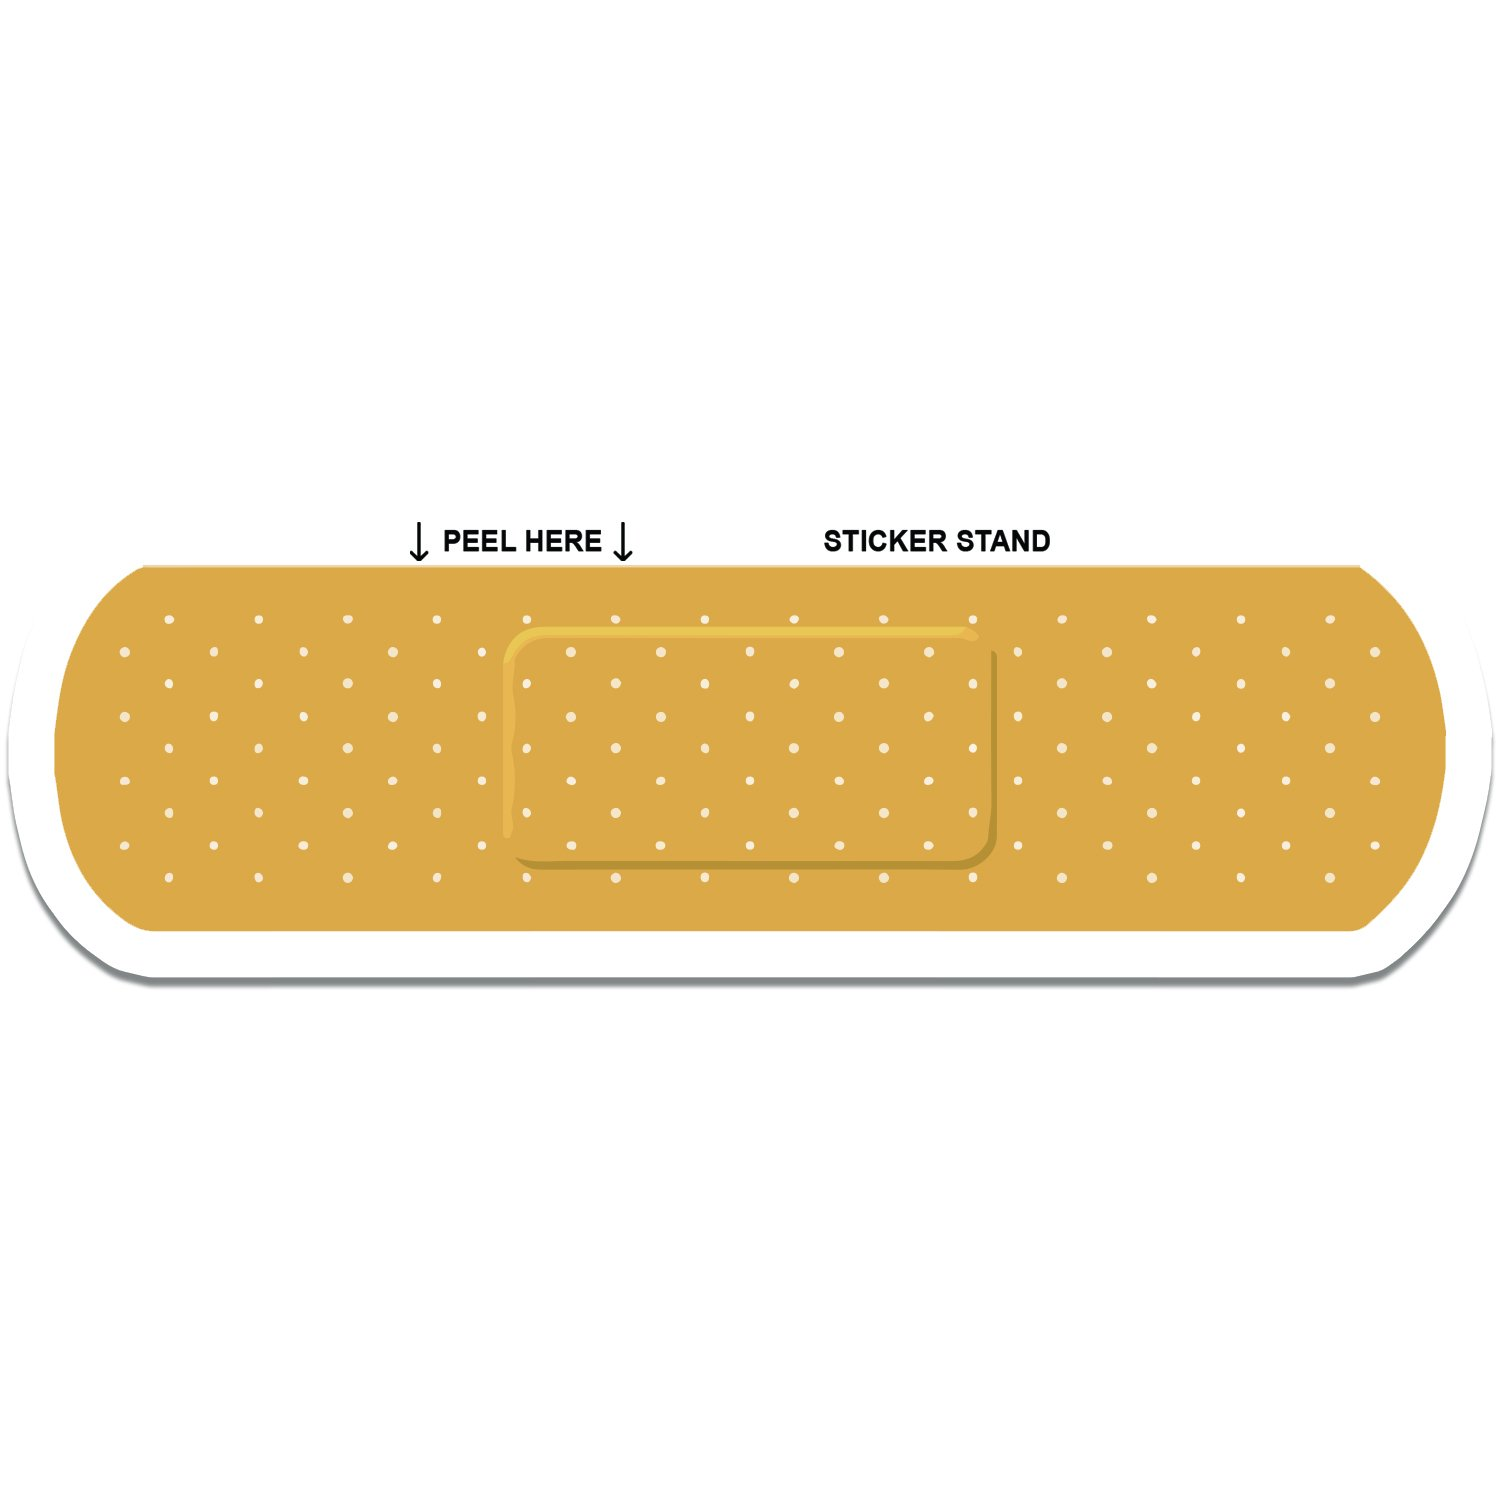 Band aid Bandage Car Decal Sticker